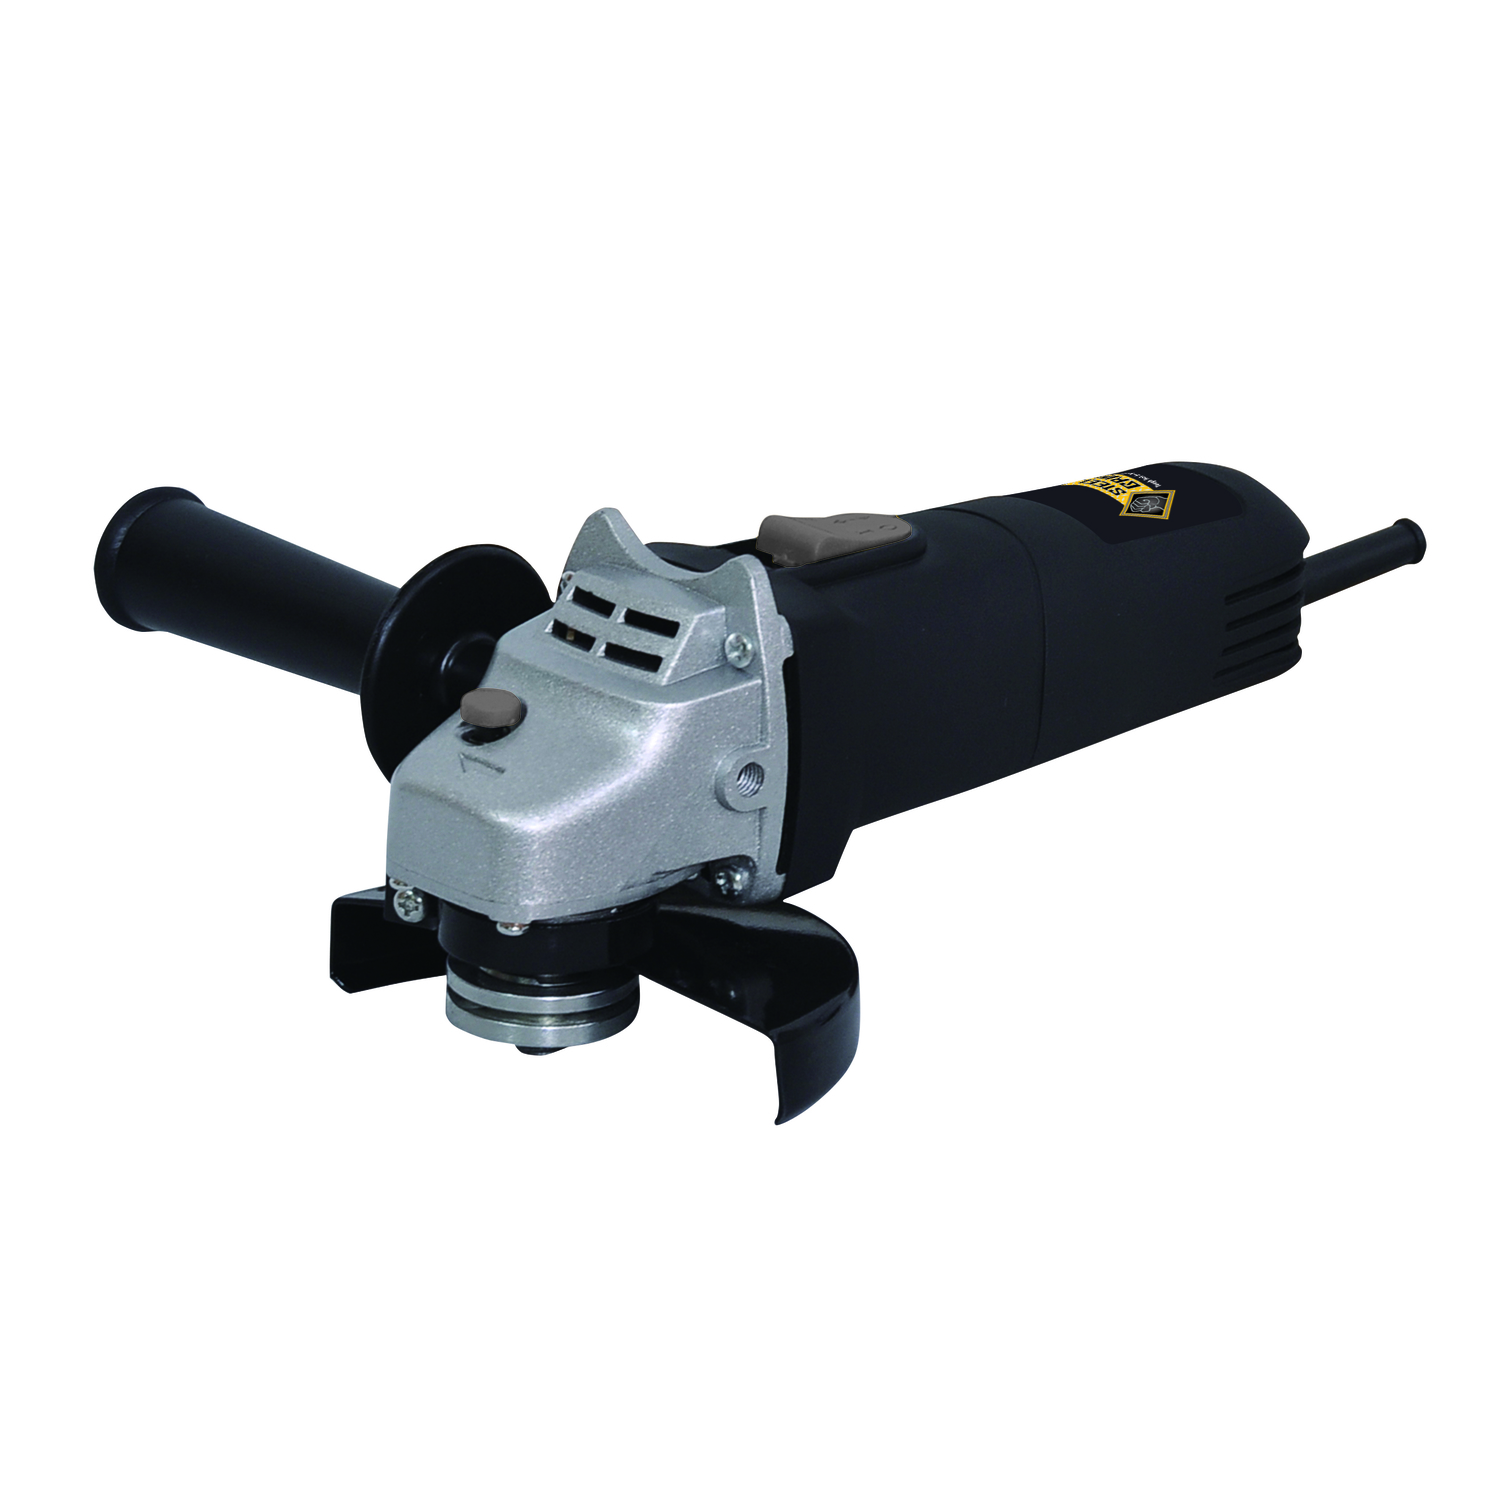 Steel Grip 5 amps Small Angle Grinder 12000 rpm Corded 4-1/2 in. in ...